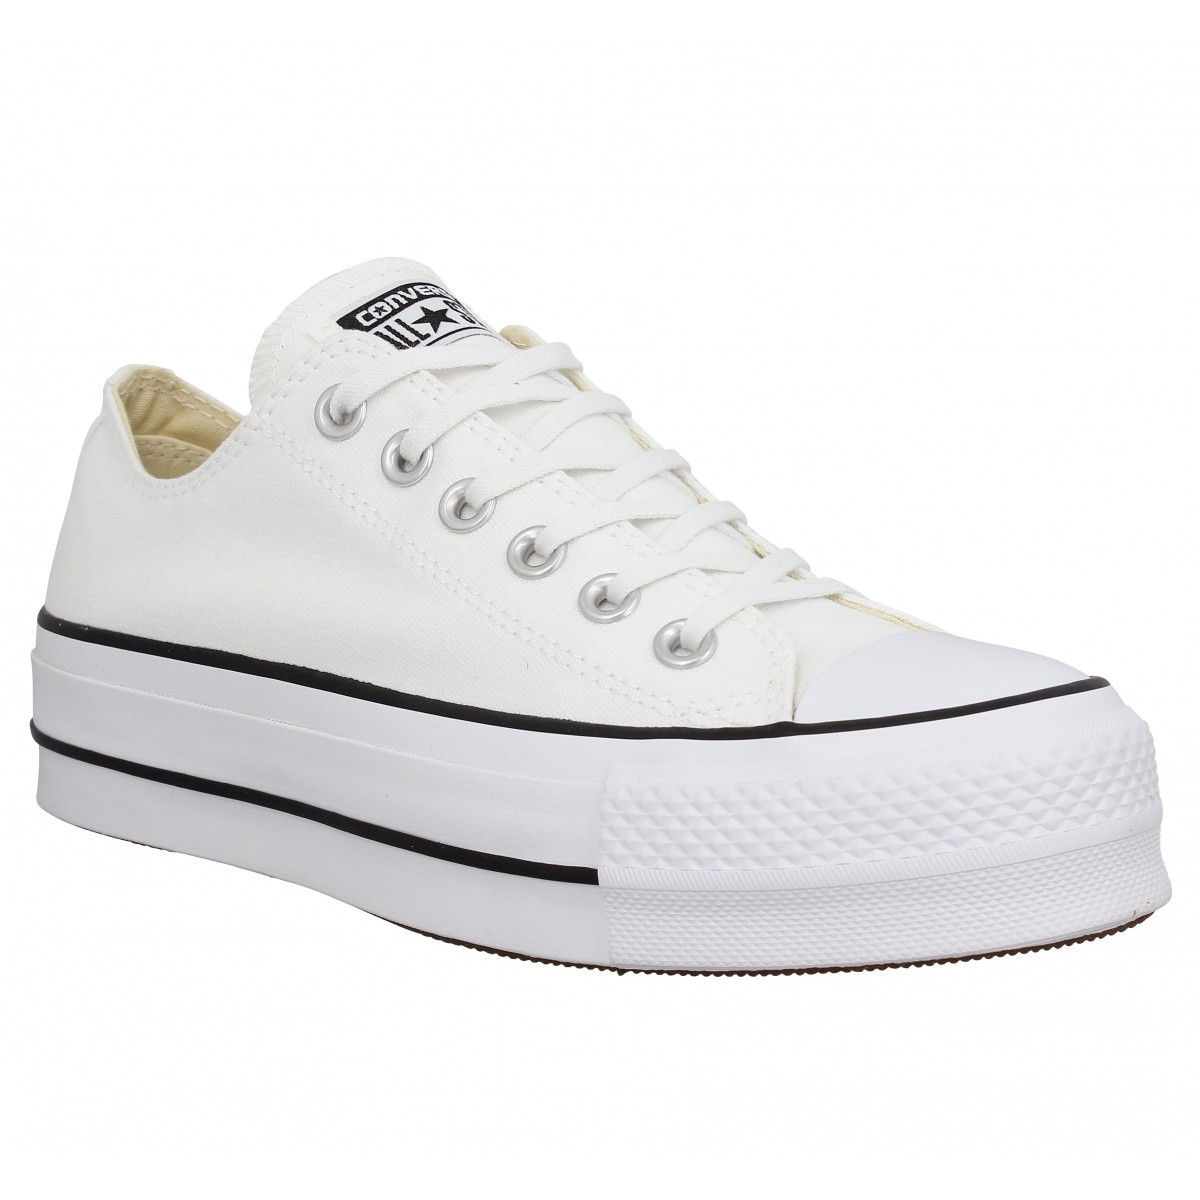 Chaussures Converse All Star beiges Casual femme NiuvL